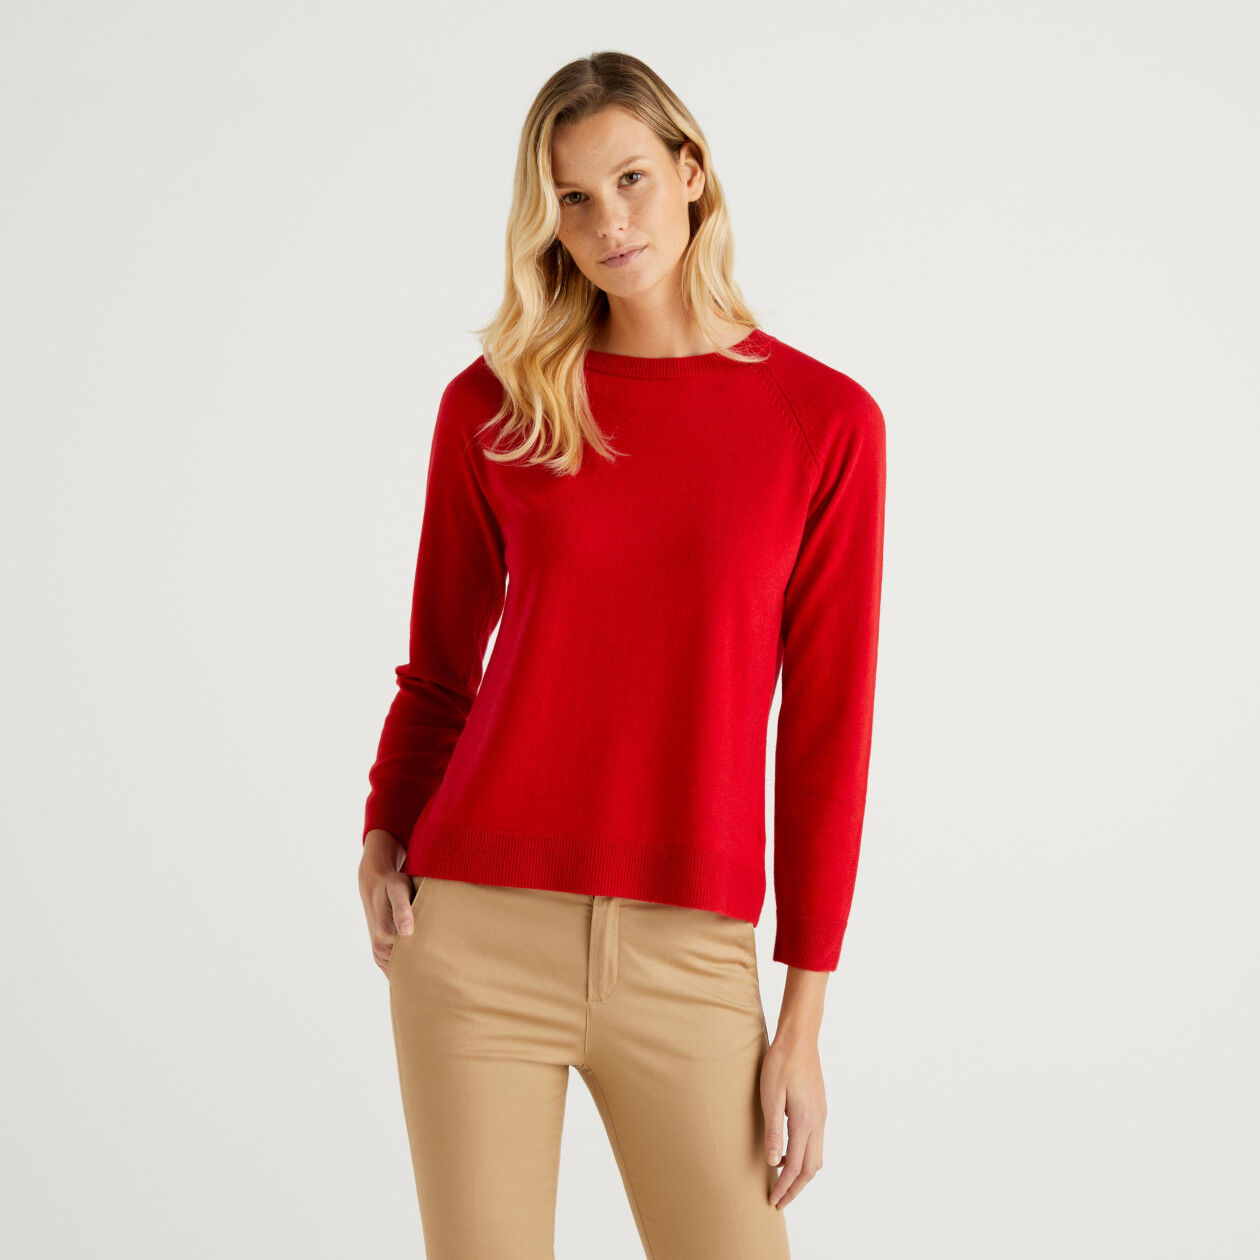 Red crew neck sweater in cashmere and wool blend